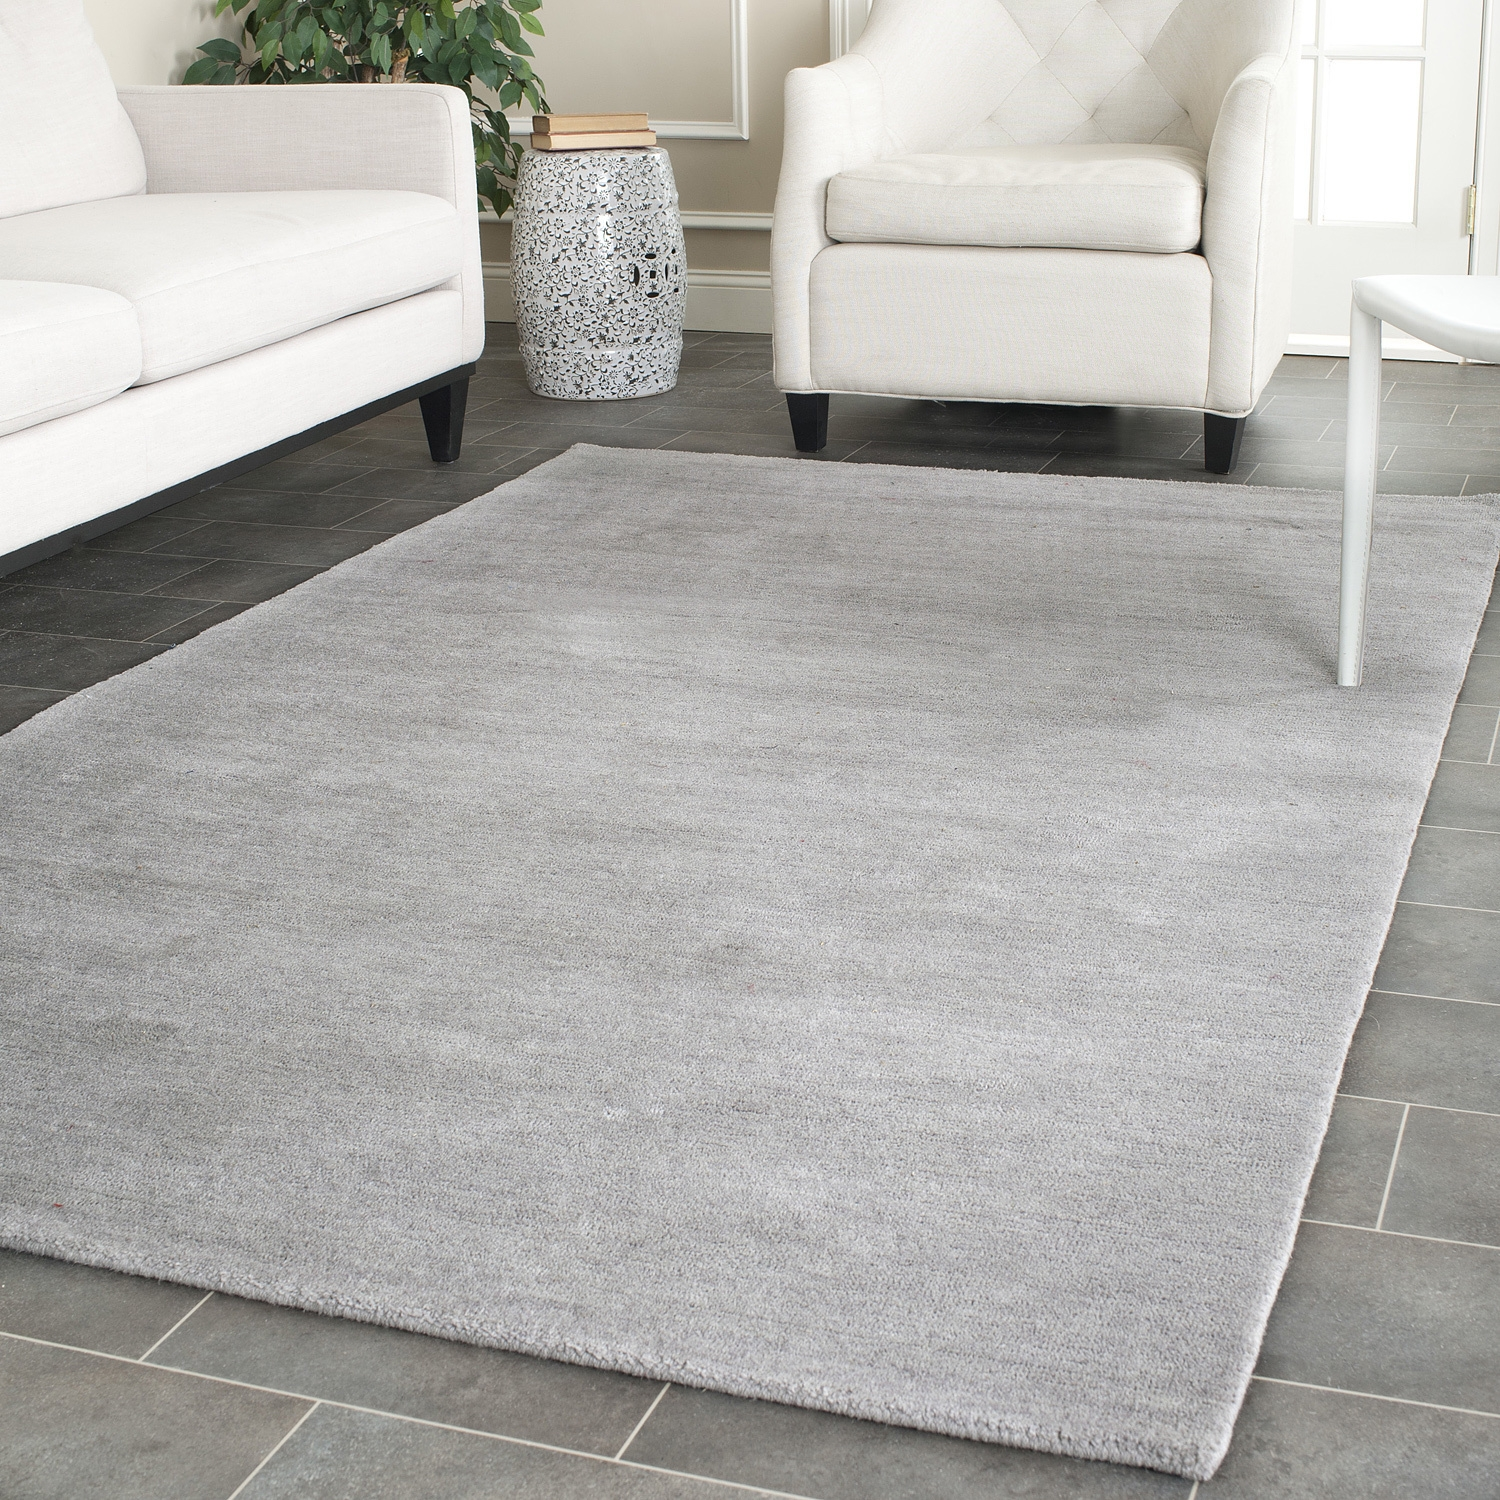 Rugs Appealing Pattern 8×10 Area Rug For Nice Floor Decor Ideas With Regard To 6×9 Wool Area Rugs (#8 of 15)